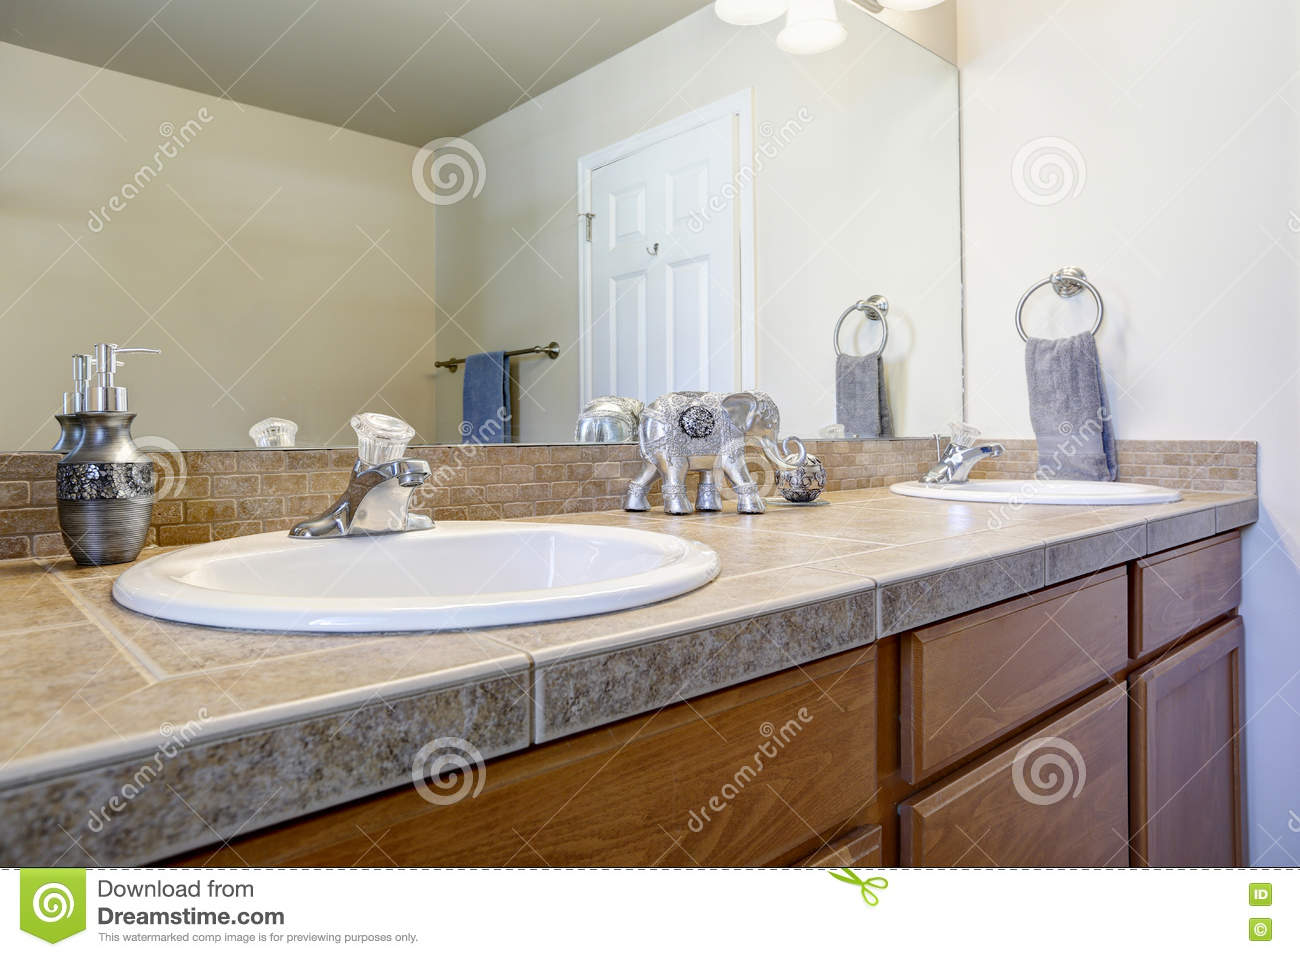 Bathroom Double Sink Vanity Cabinet Close Up Stock Image Image Of Tile Bathroom 80016701